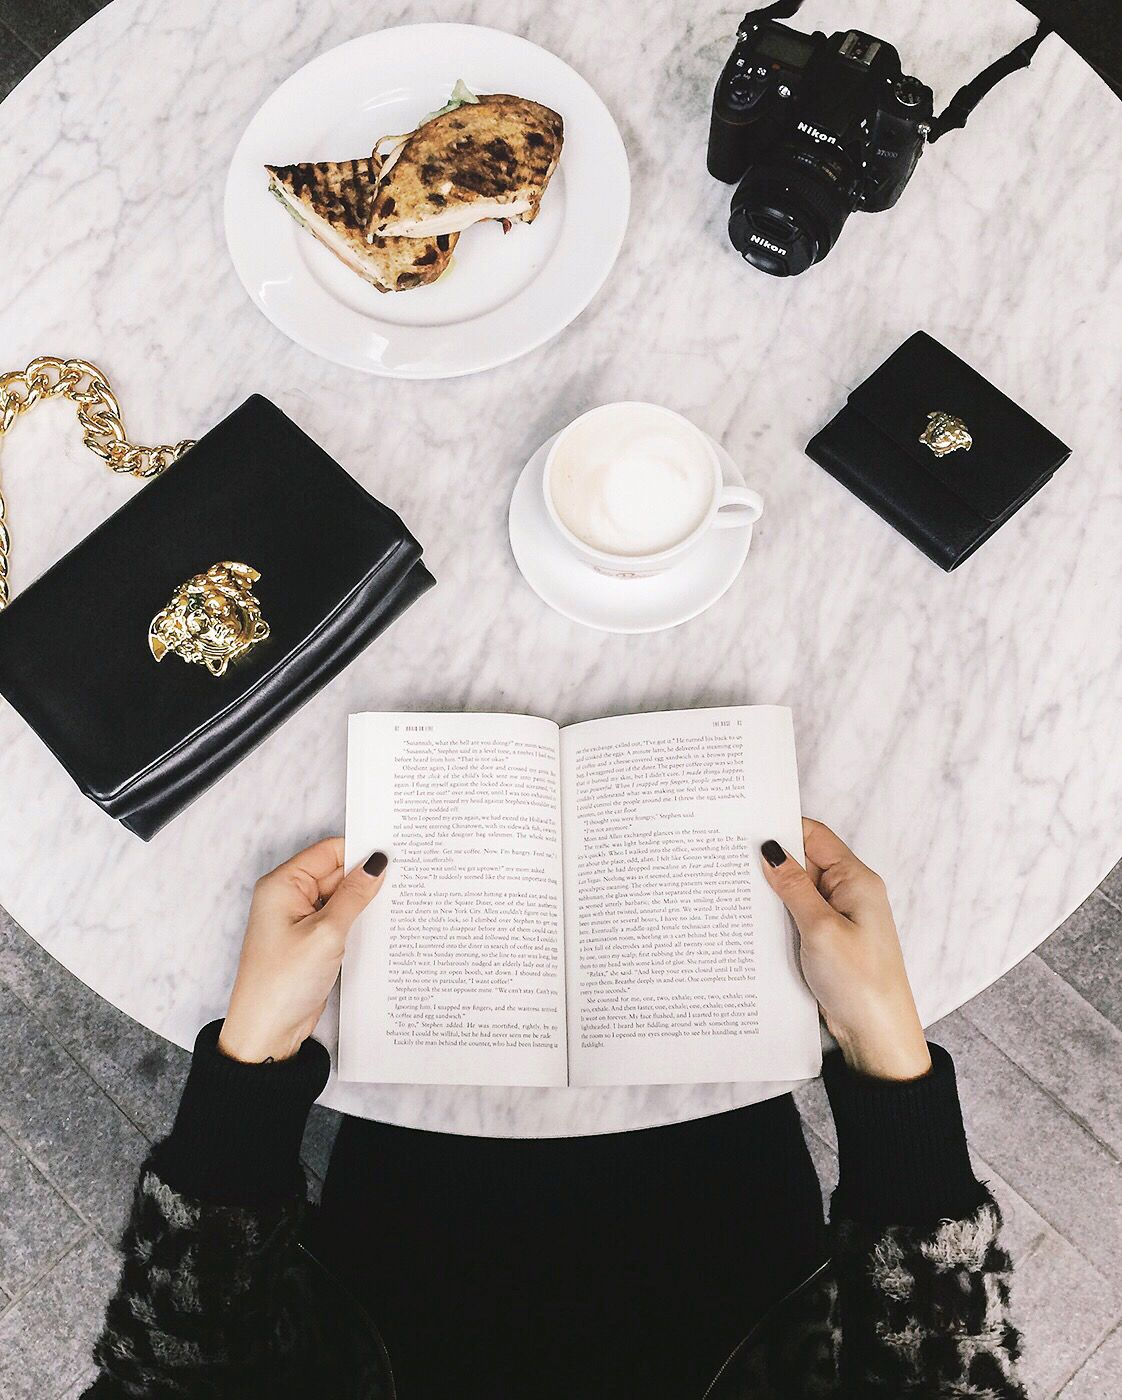 The Versace Palazzo collection is the perfect coffee break accessory. Photo credit Lilyanne Nguyen.